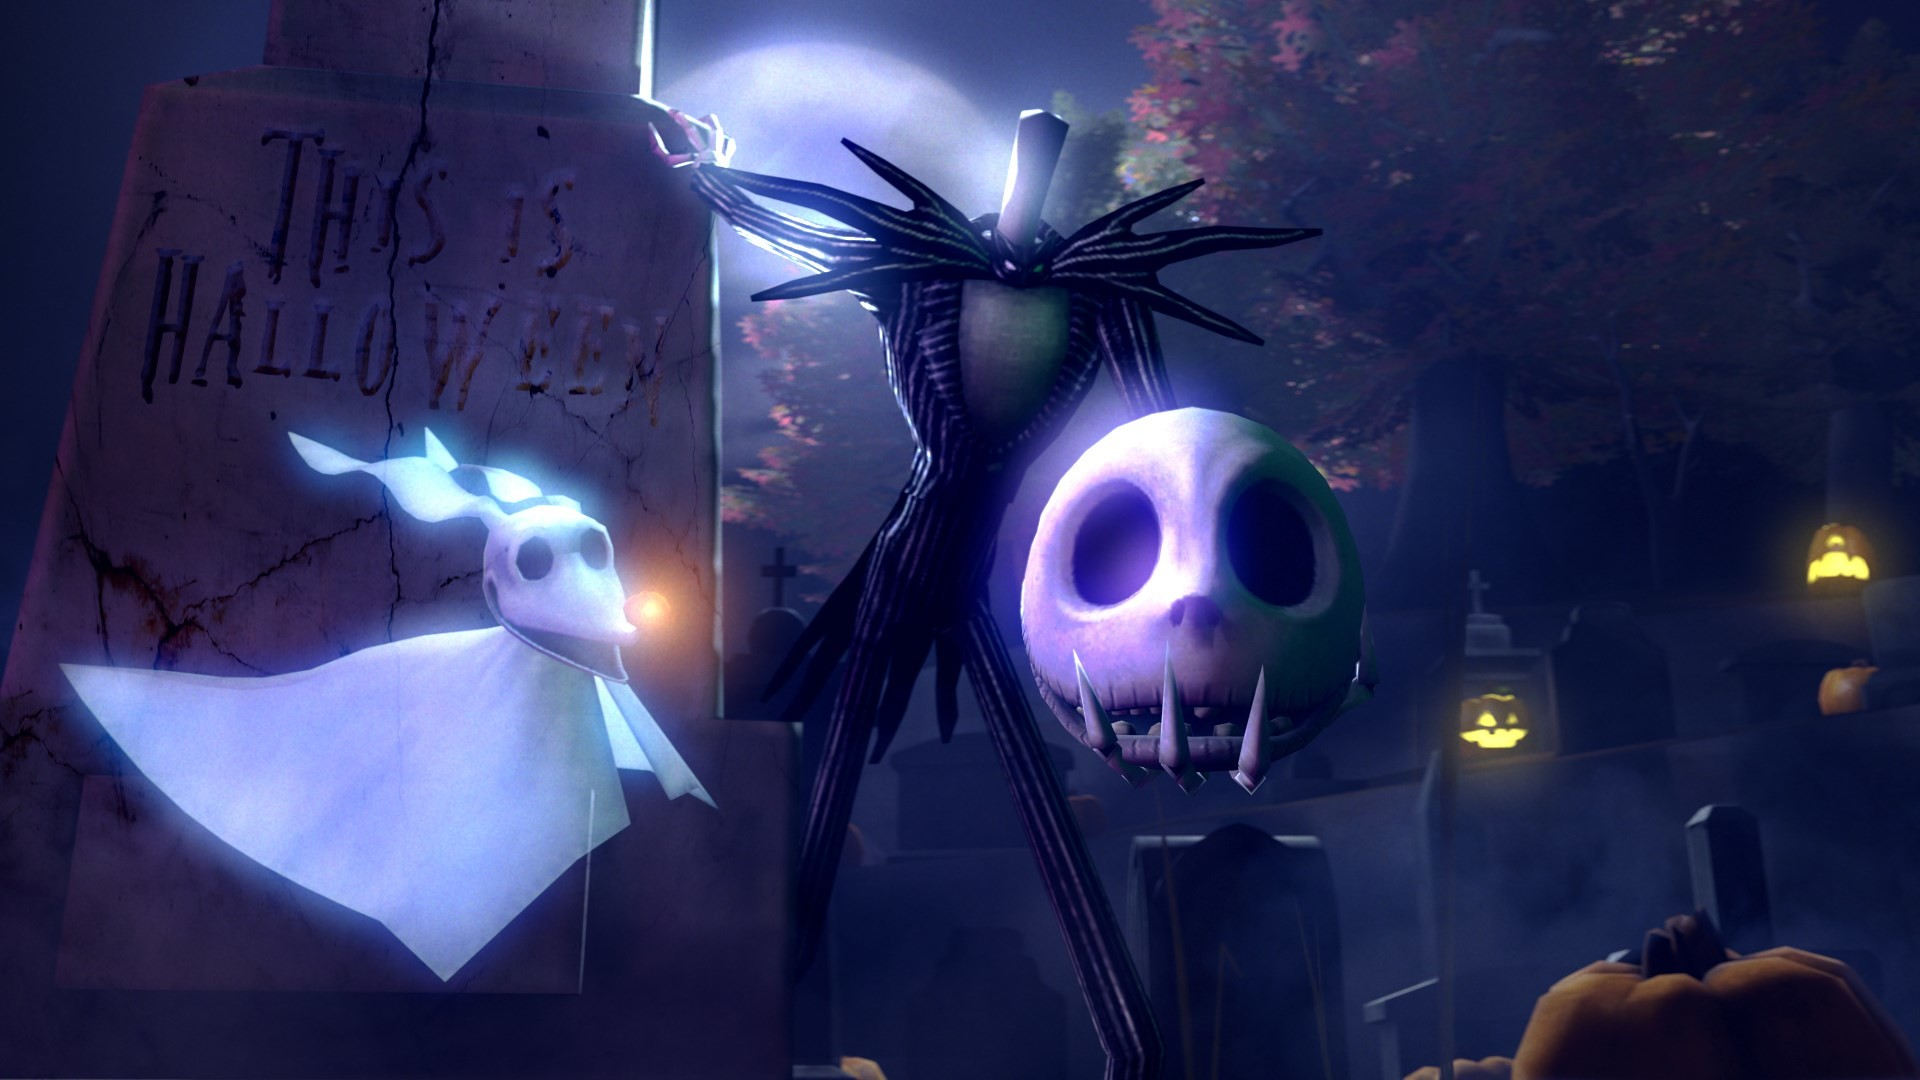 Nightmare Before Christmas Wallpaper Android.The Nightmare Before Christmas Backgrounds 61 Images